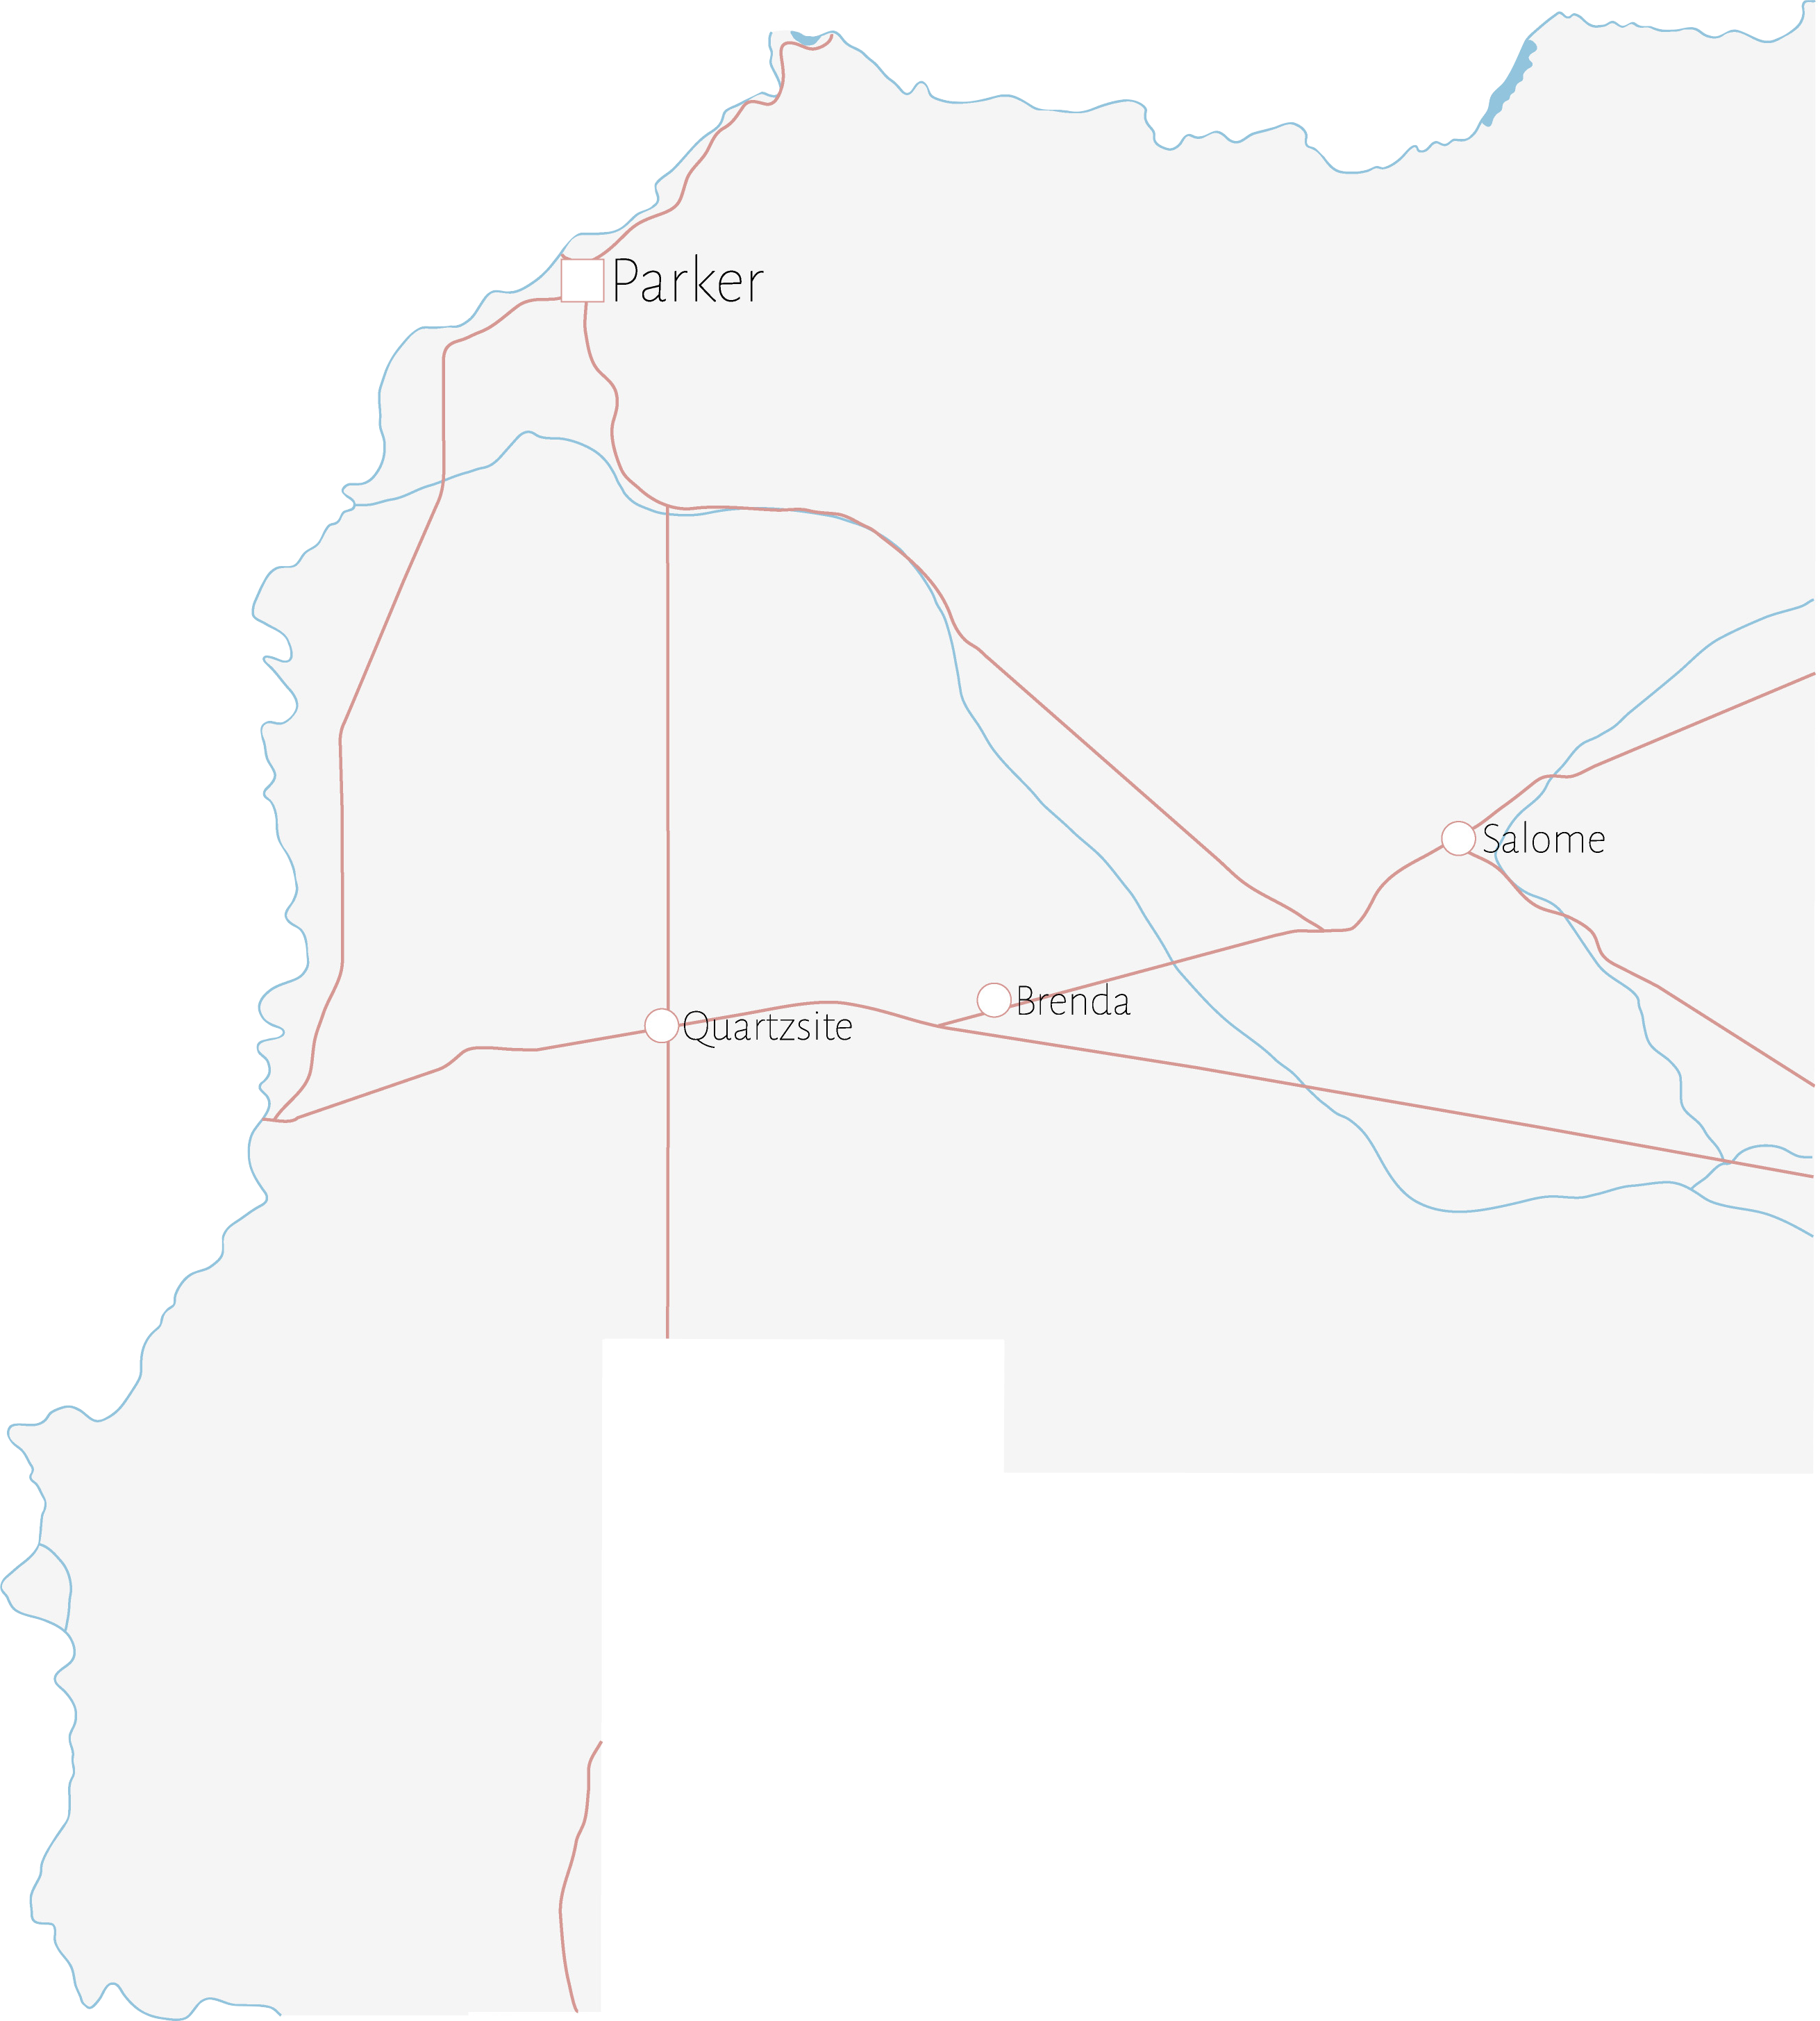 Map of Parker County